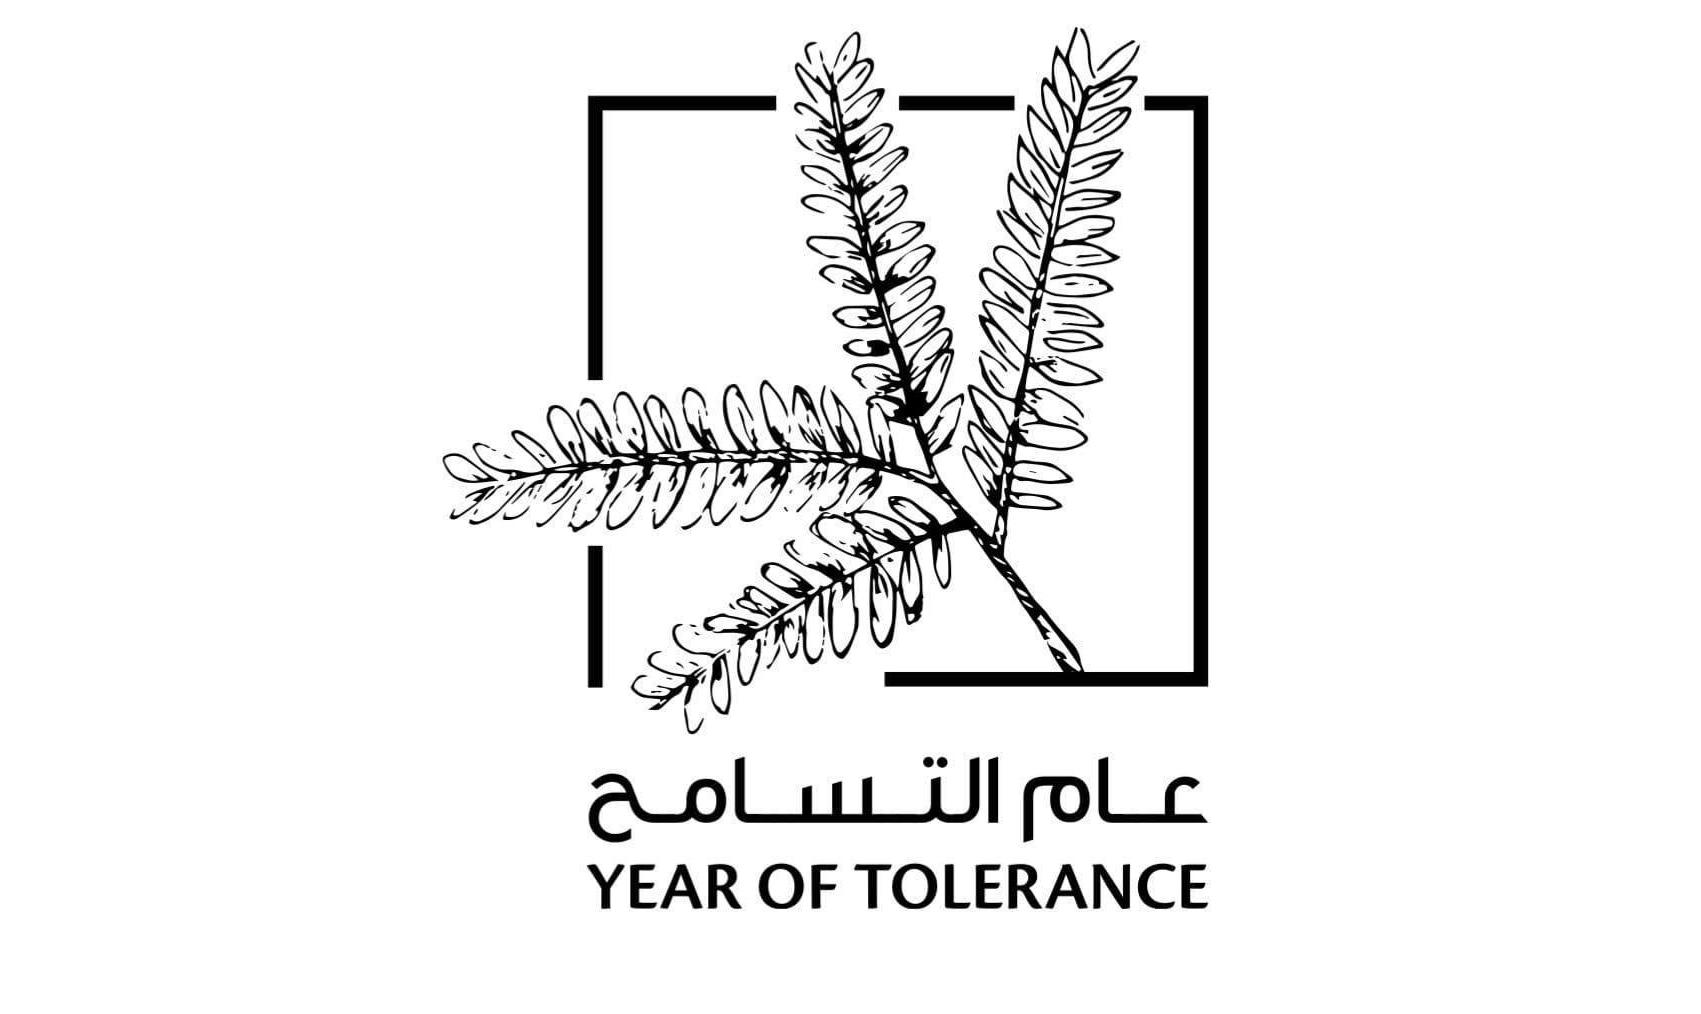 Year Of Tolerance,Iran Insurance,Social Responsibility,Volunteering,Serving the Nation,CRS,Corporate Social Responsibility